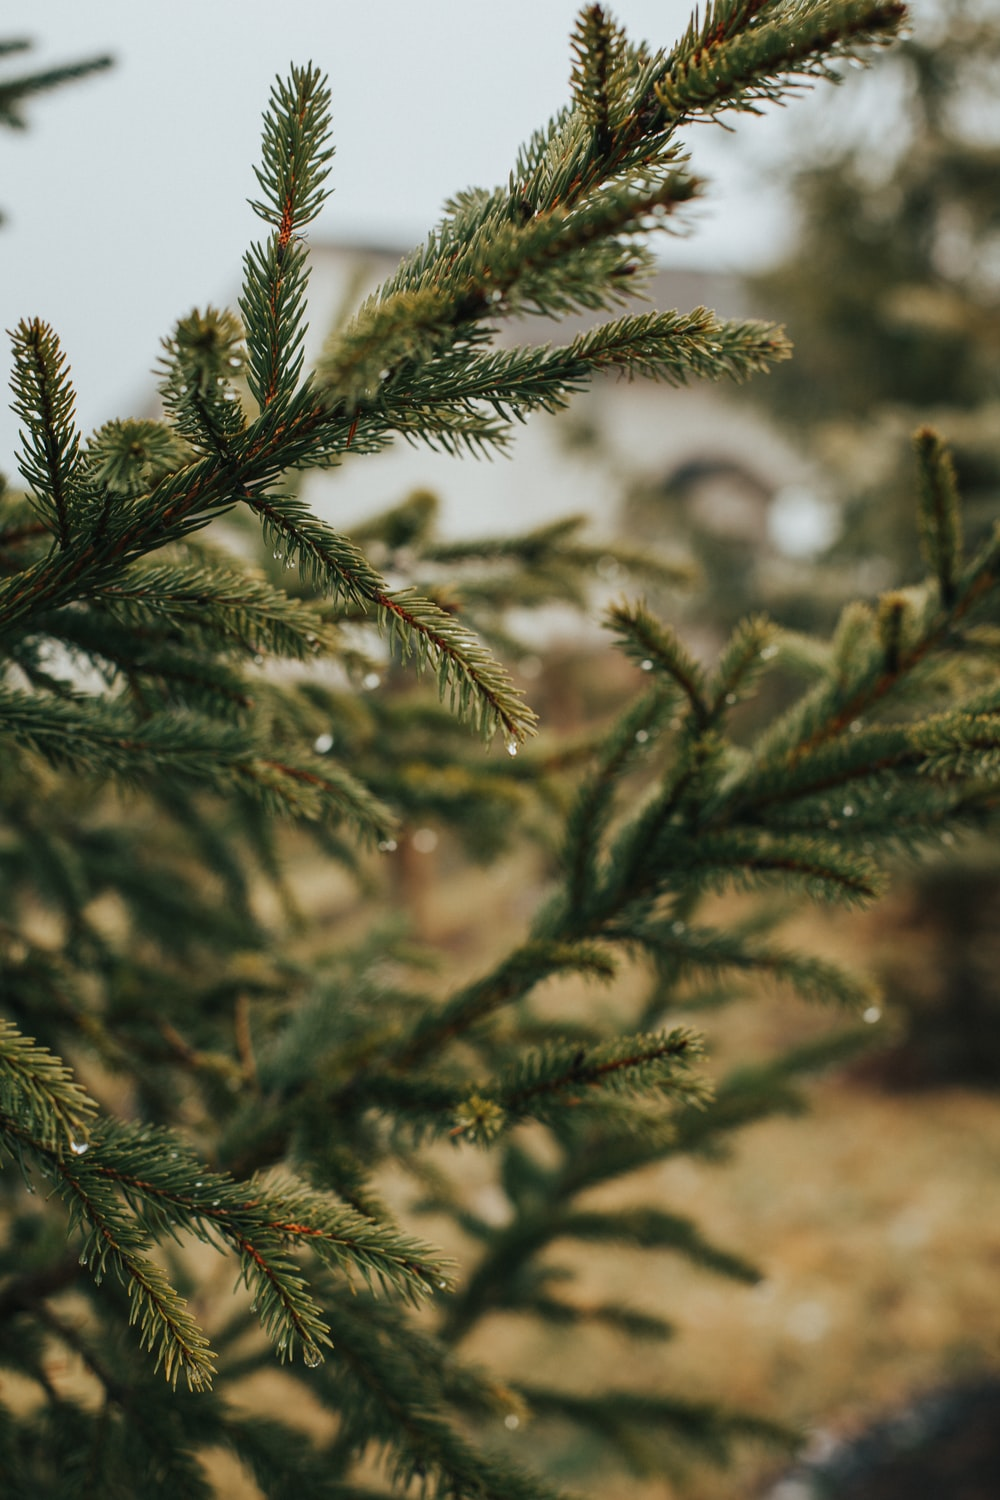 pine tree close-up photography